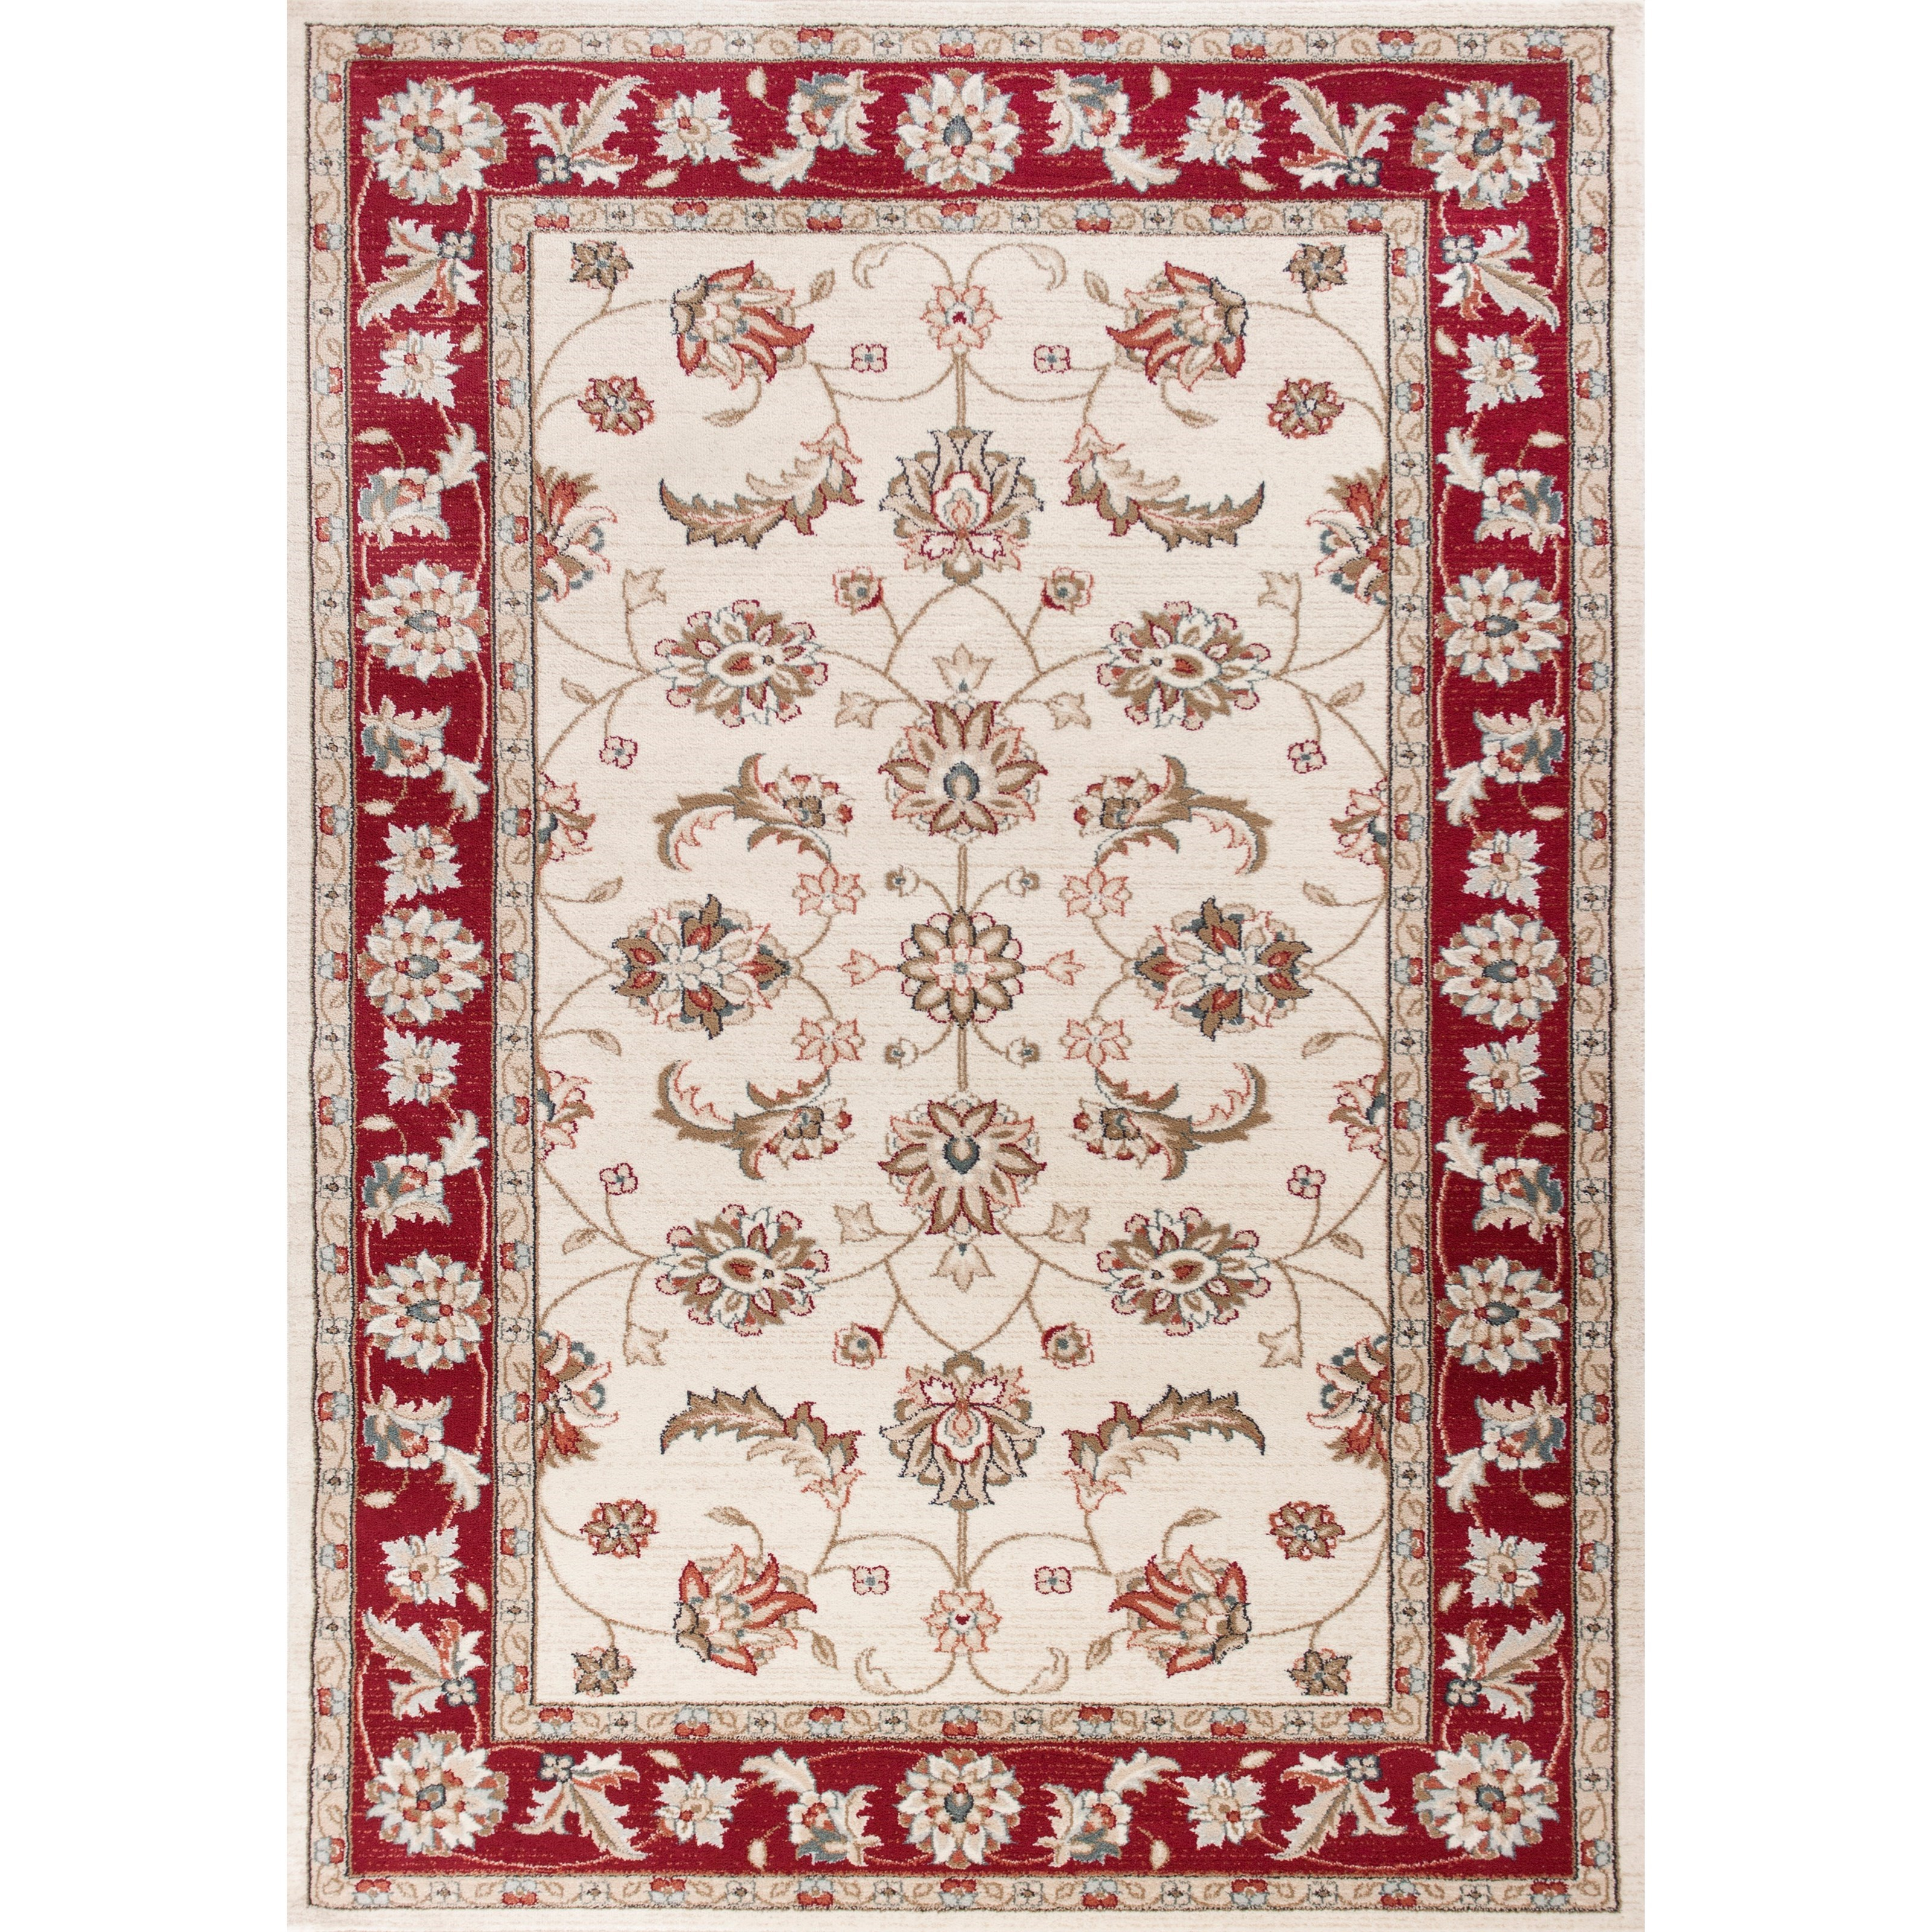 "Avalon 7'7"" X 5'3"" Area Rug by Kas at Zak's Home"